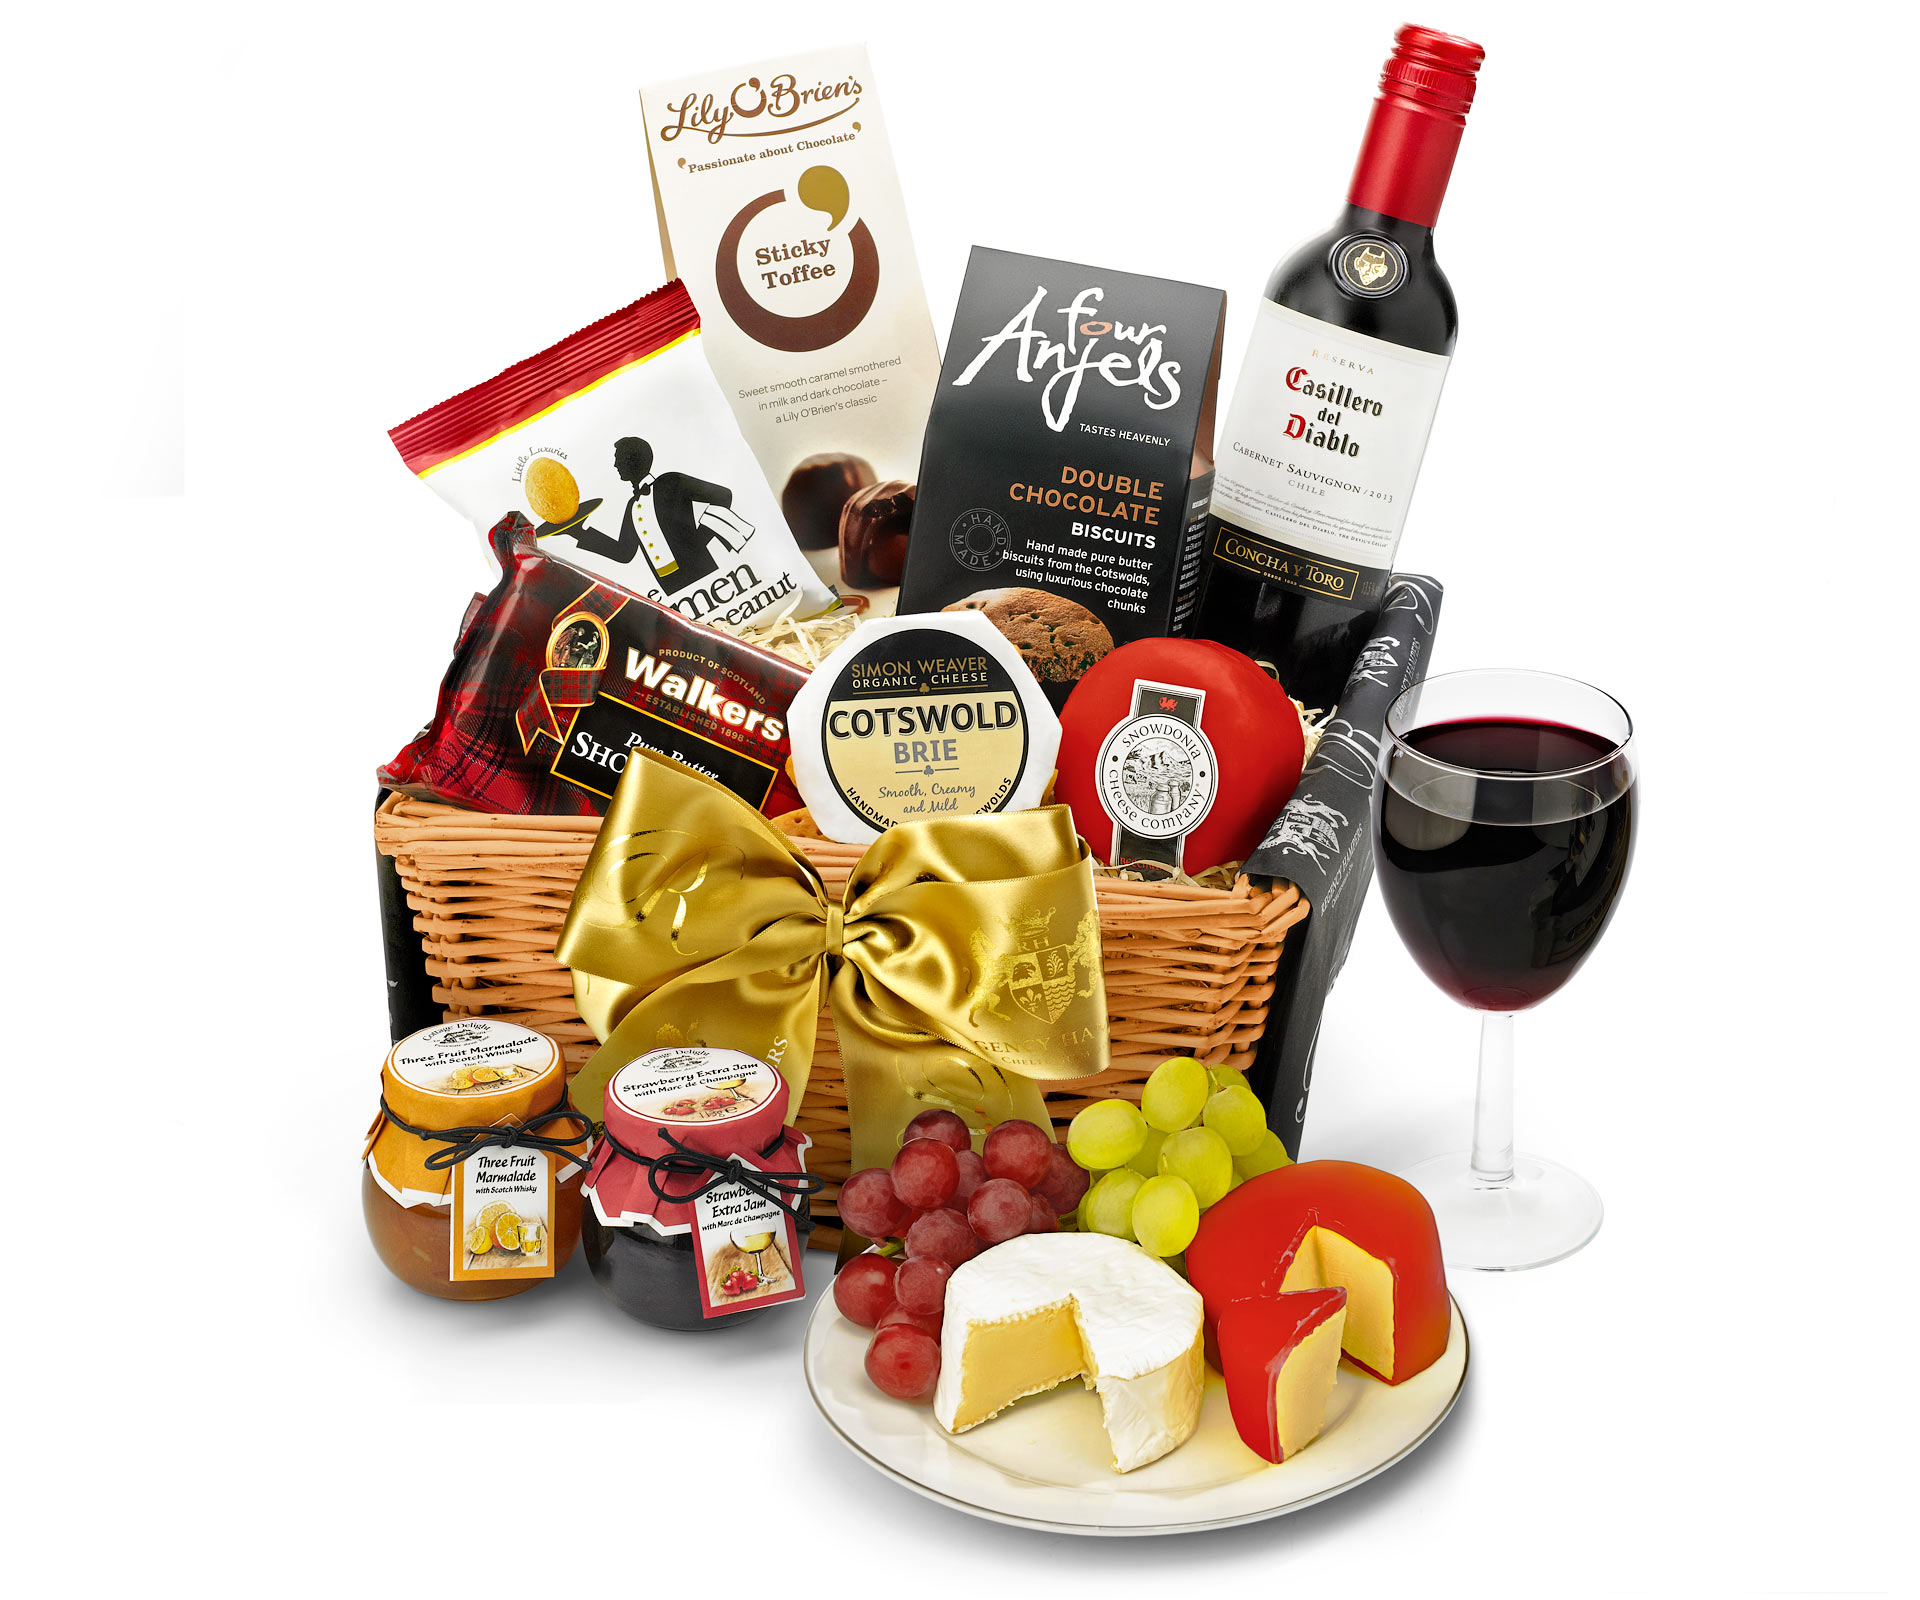 Wedding Gift Hampers Uk: Anniversary & Wedding Downton Hamper With Red Wine